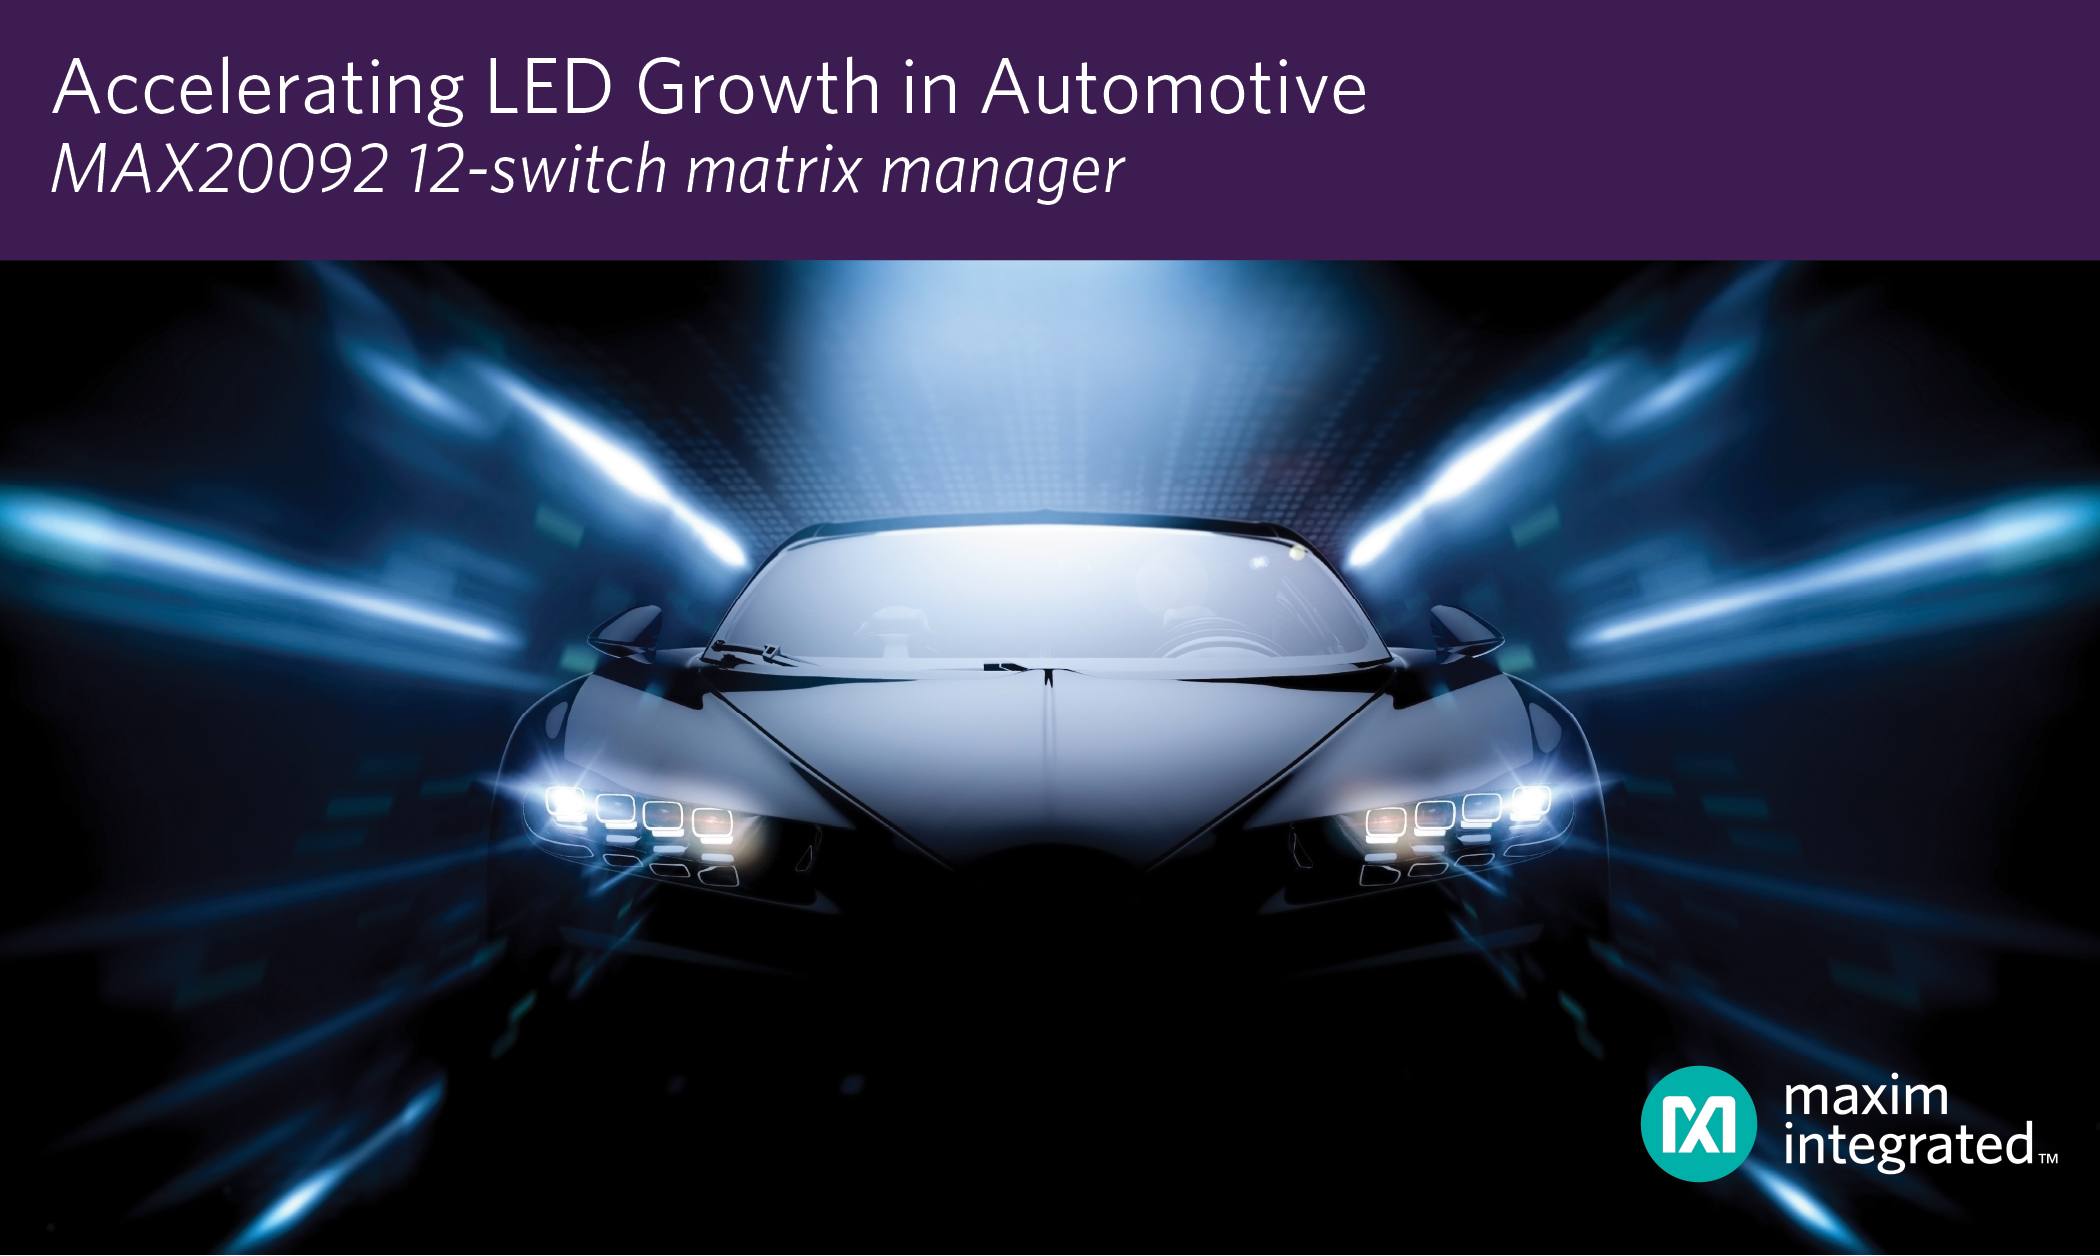 LED Matrix Manager for Automotive Matrix and Pixel Lighting